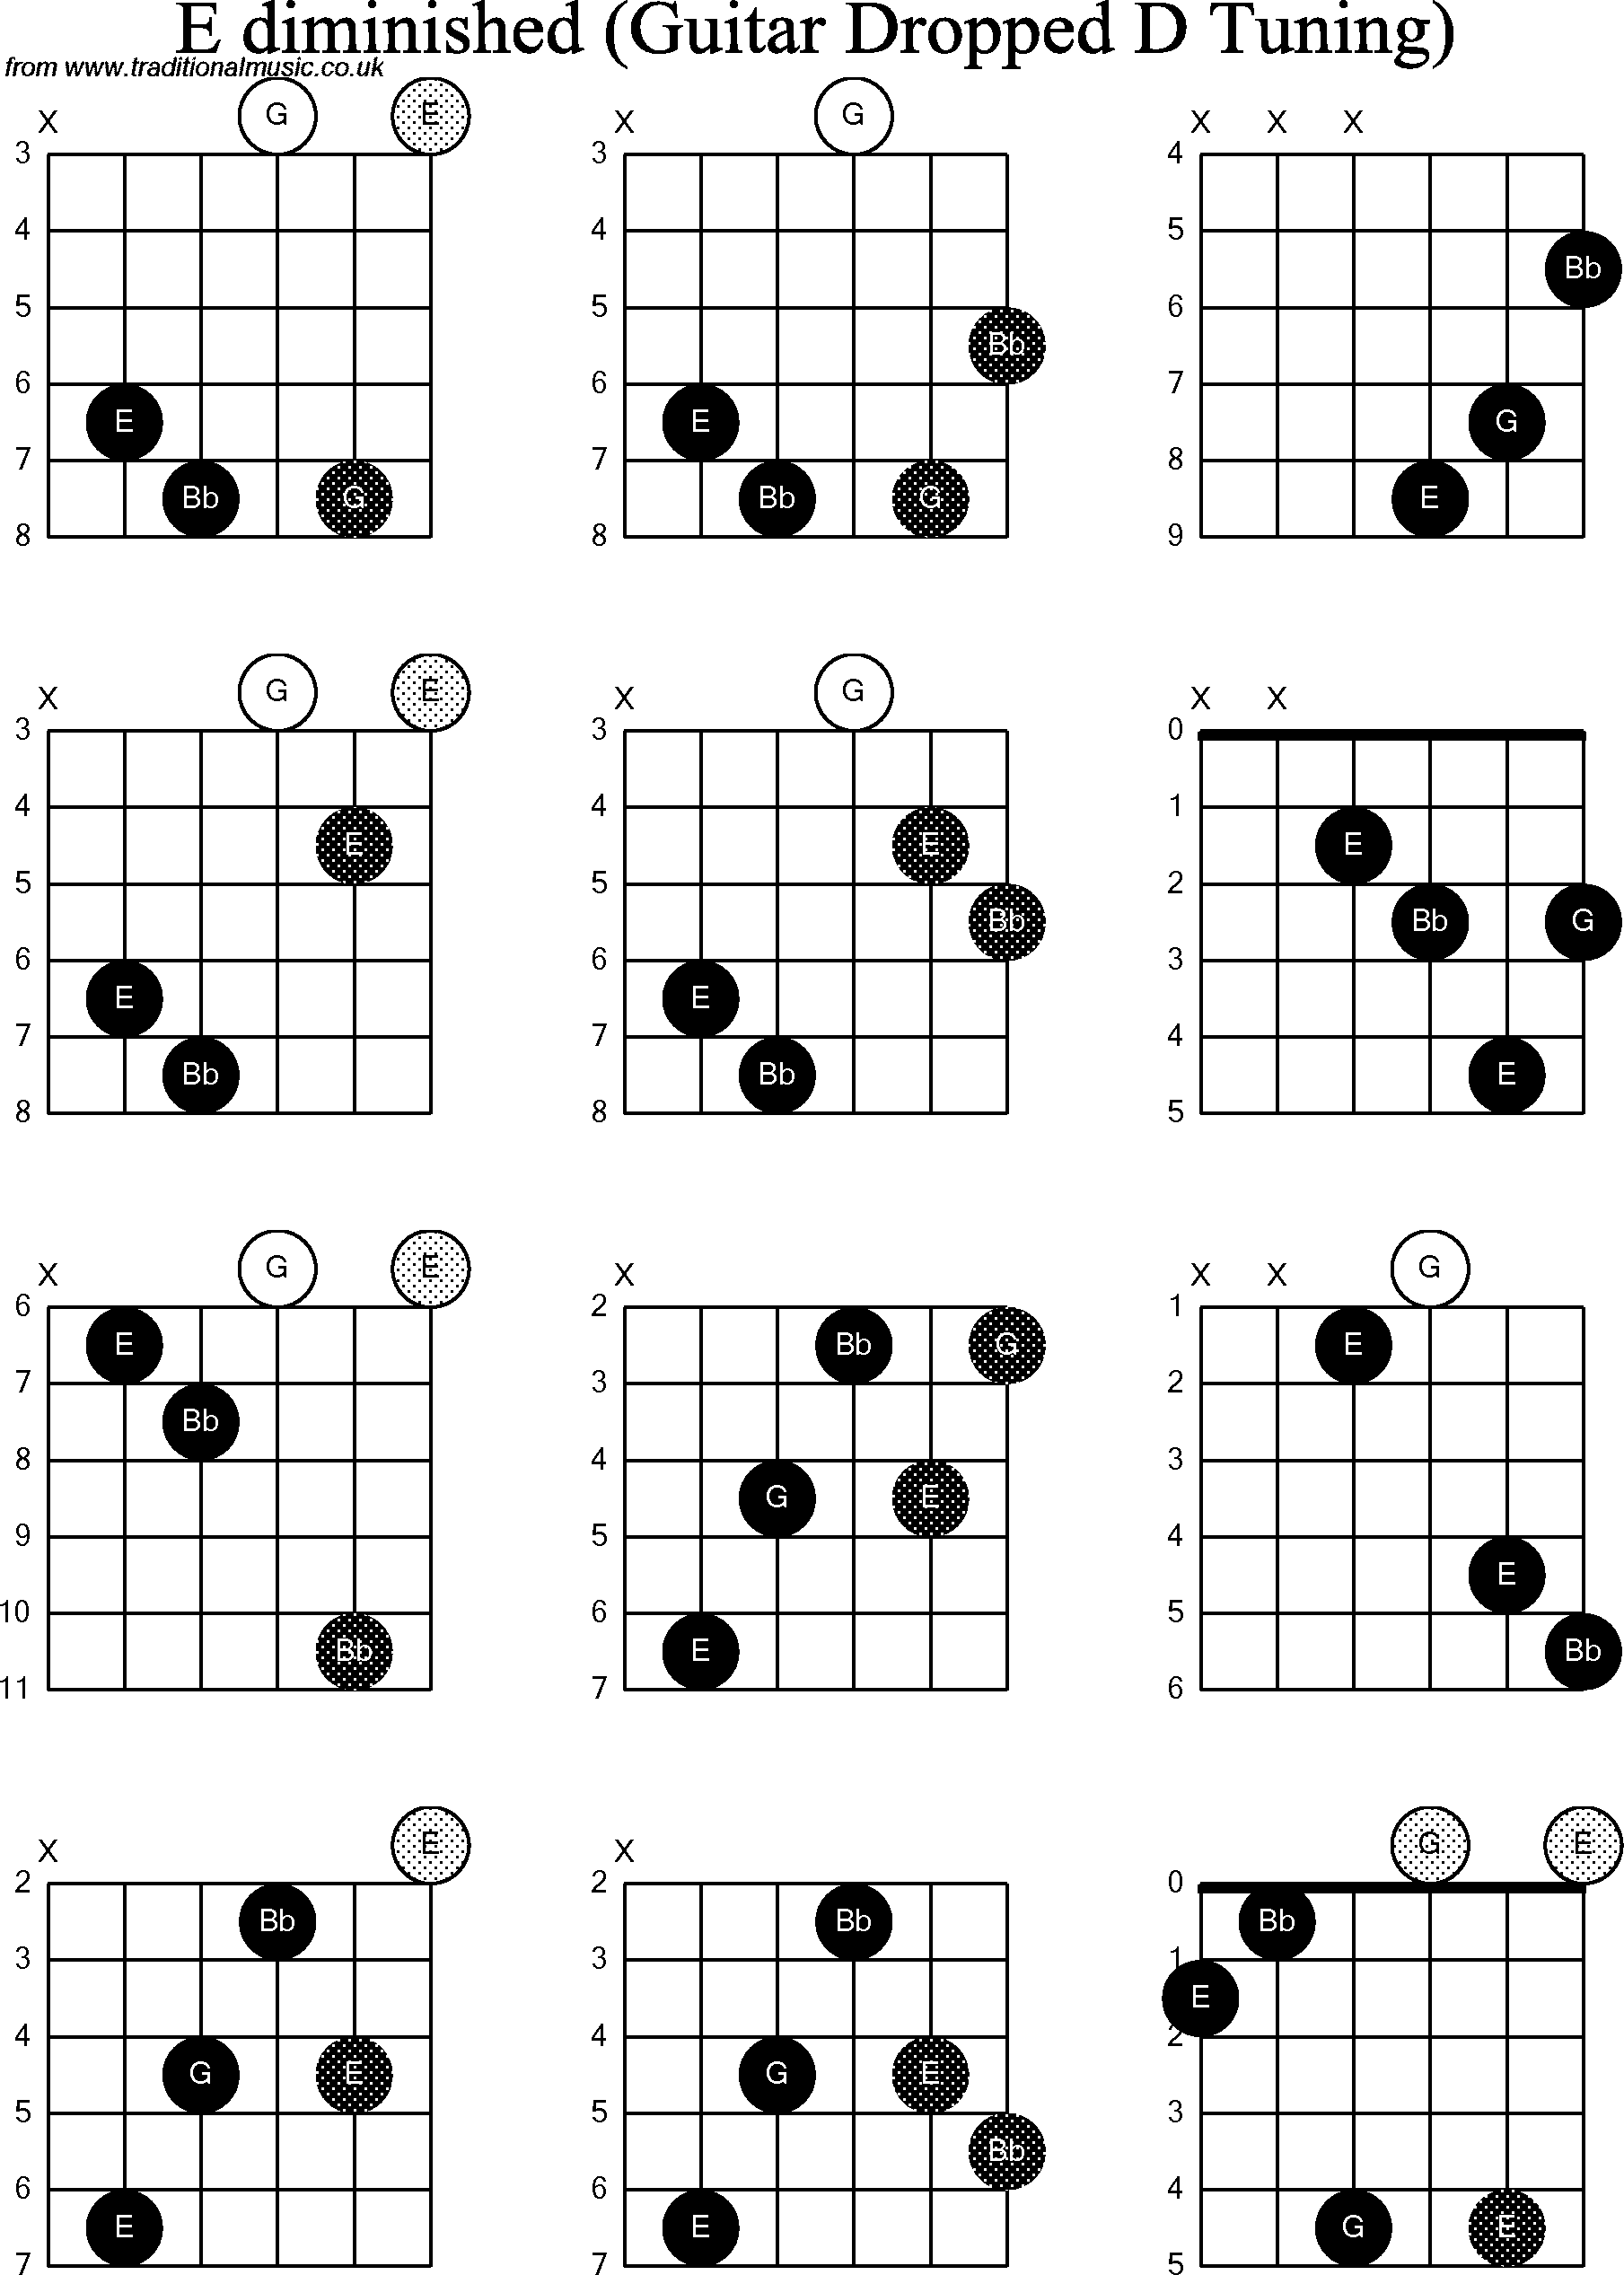 Chord Diagrams For Dropped D Guitardadgbe E Diminished